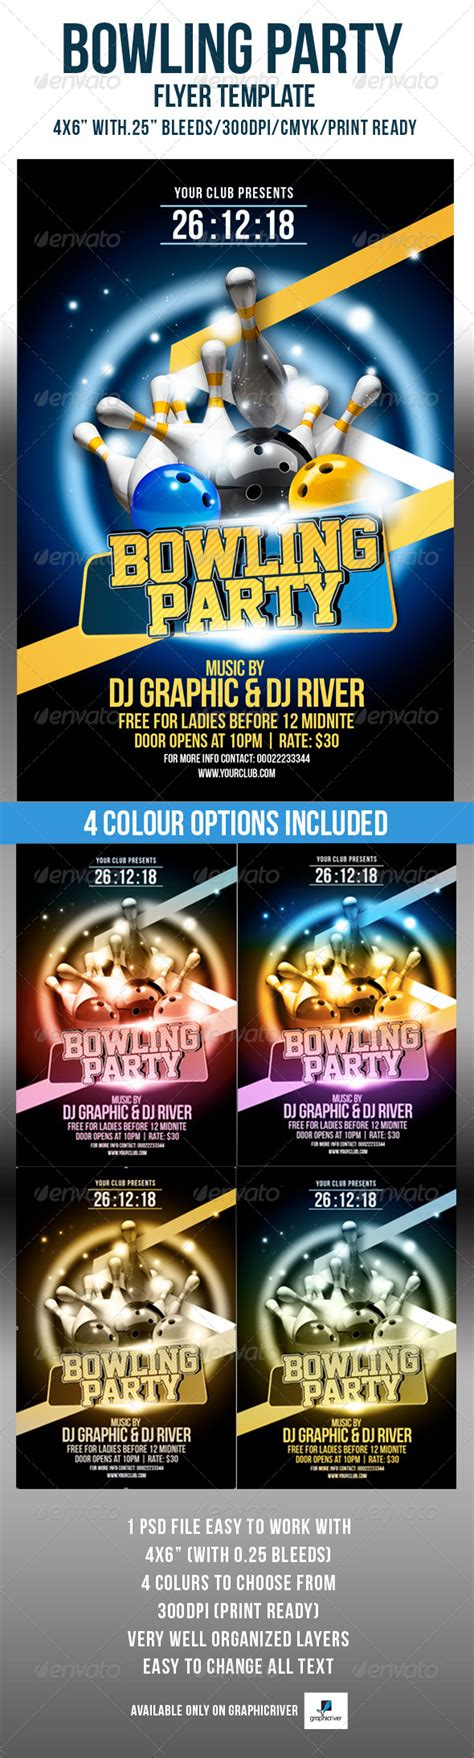 Bowling Party Flyer Template By Crabsta52 Graphicriver Bowling Event Flyer Template